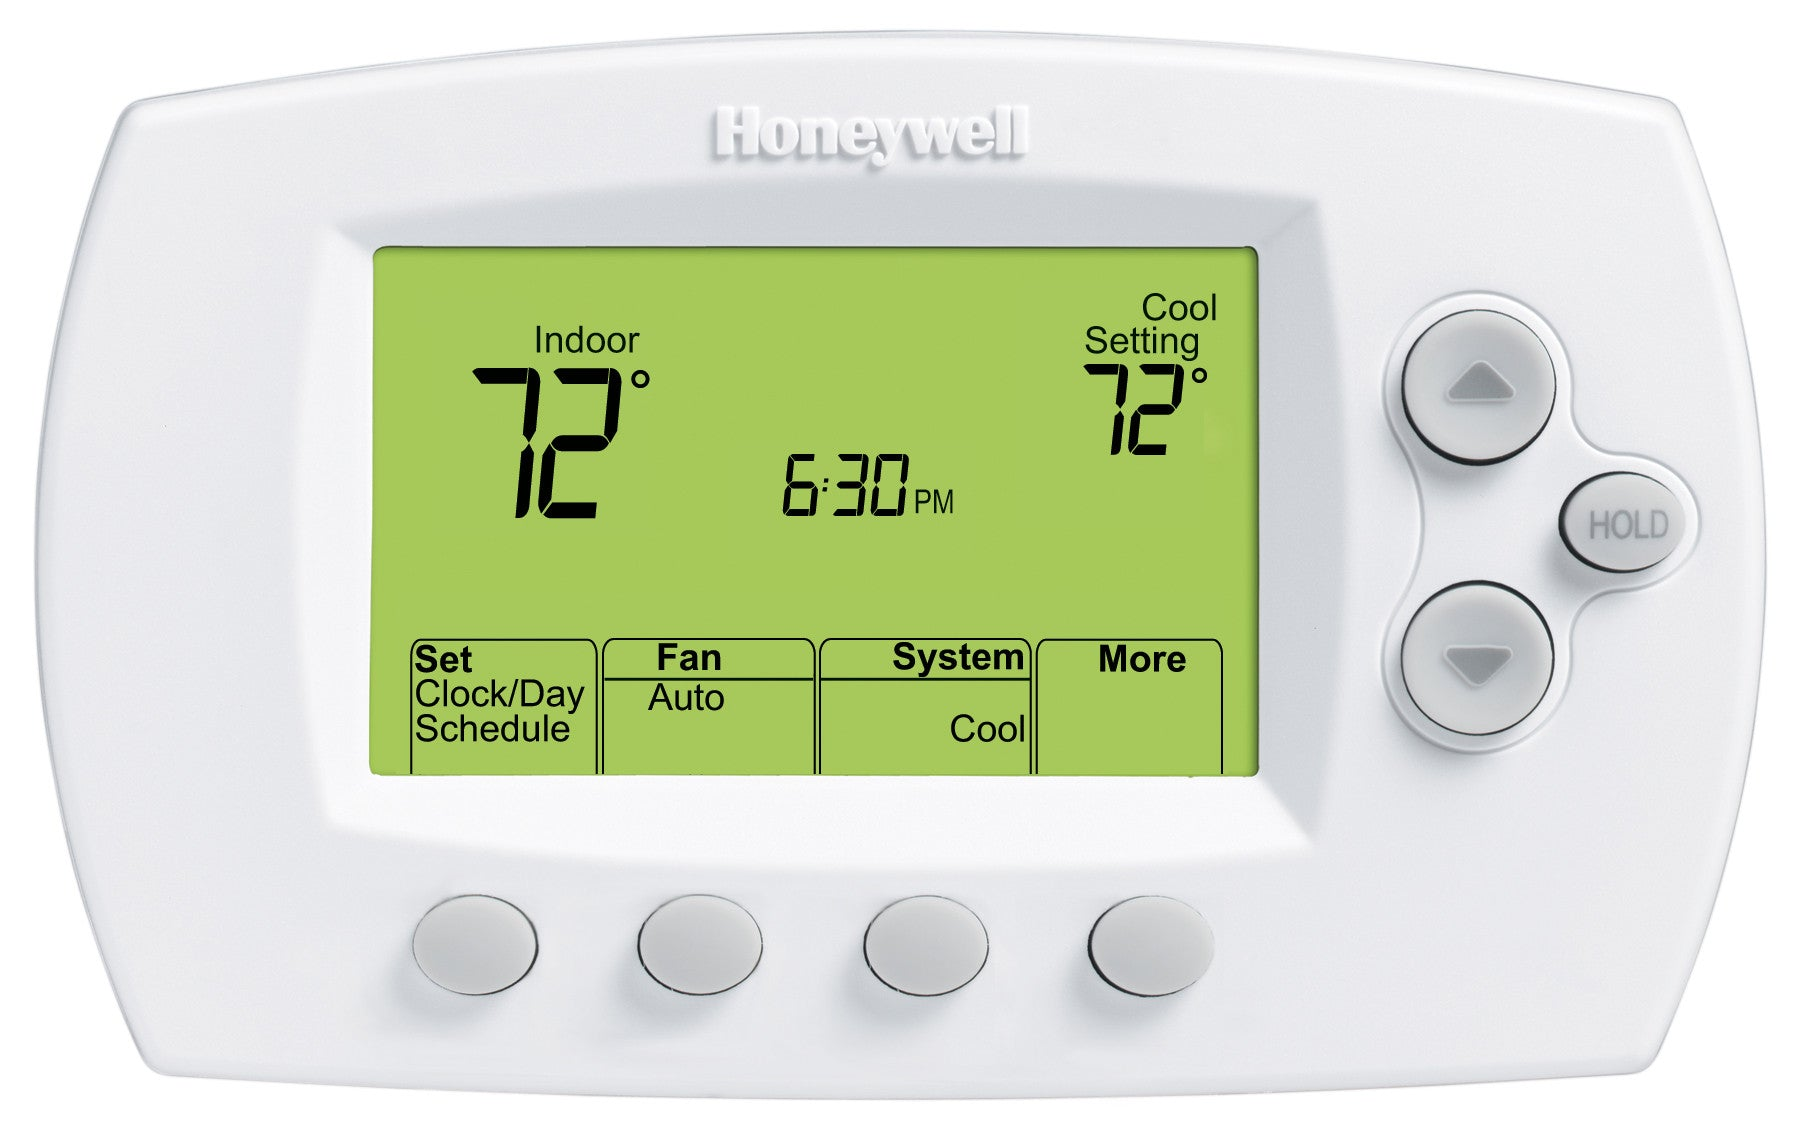 Honeywell TH6220D1028 FocusPro Programmable, 2H/2C, Large Display Thermostat